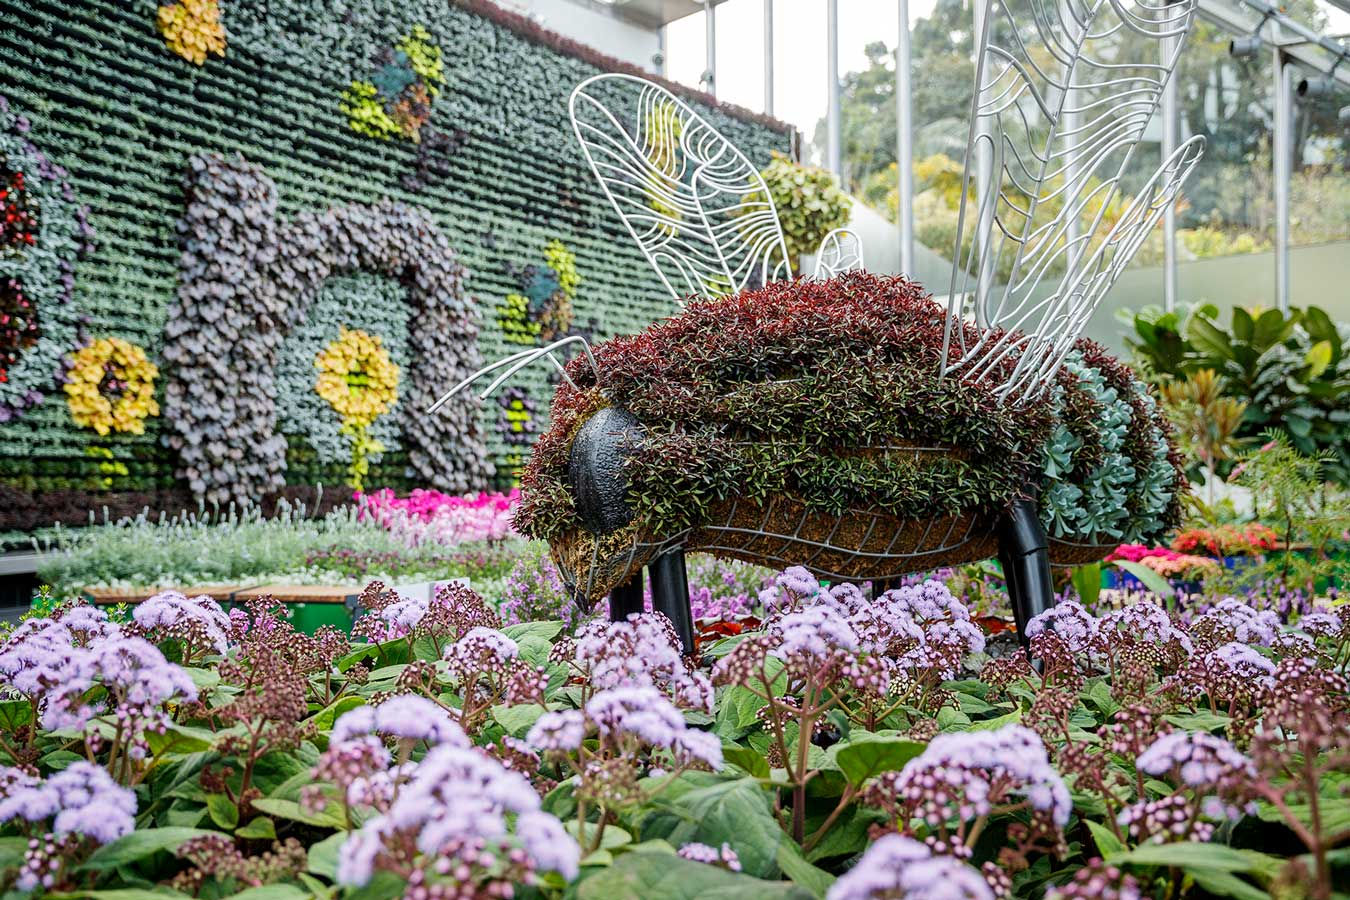 Image: courtesy of Pollination at The Calyx at The Royal Botanic Gardens Sydney